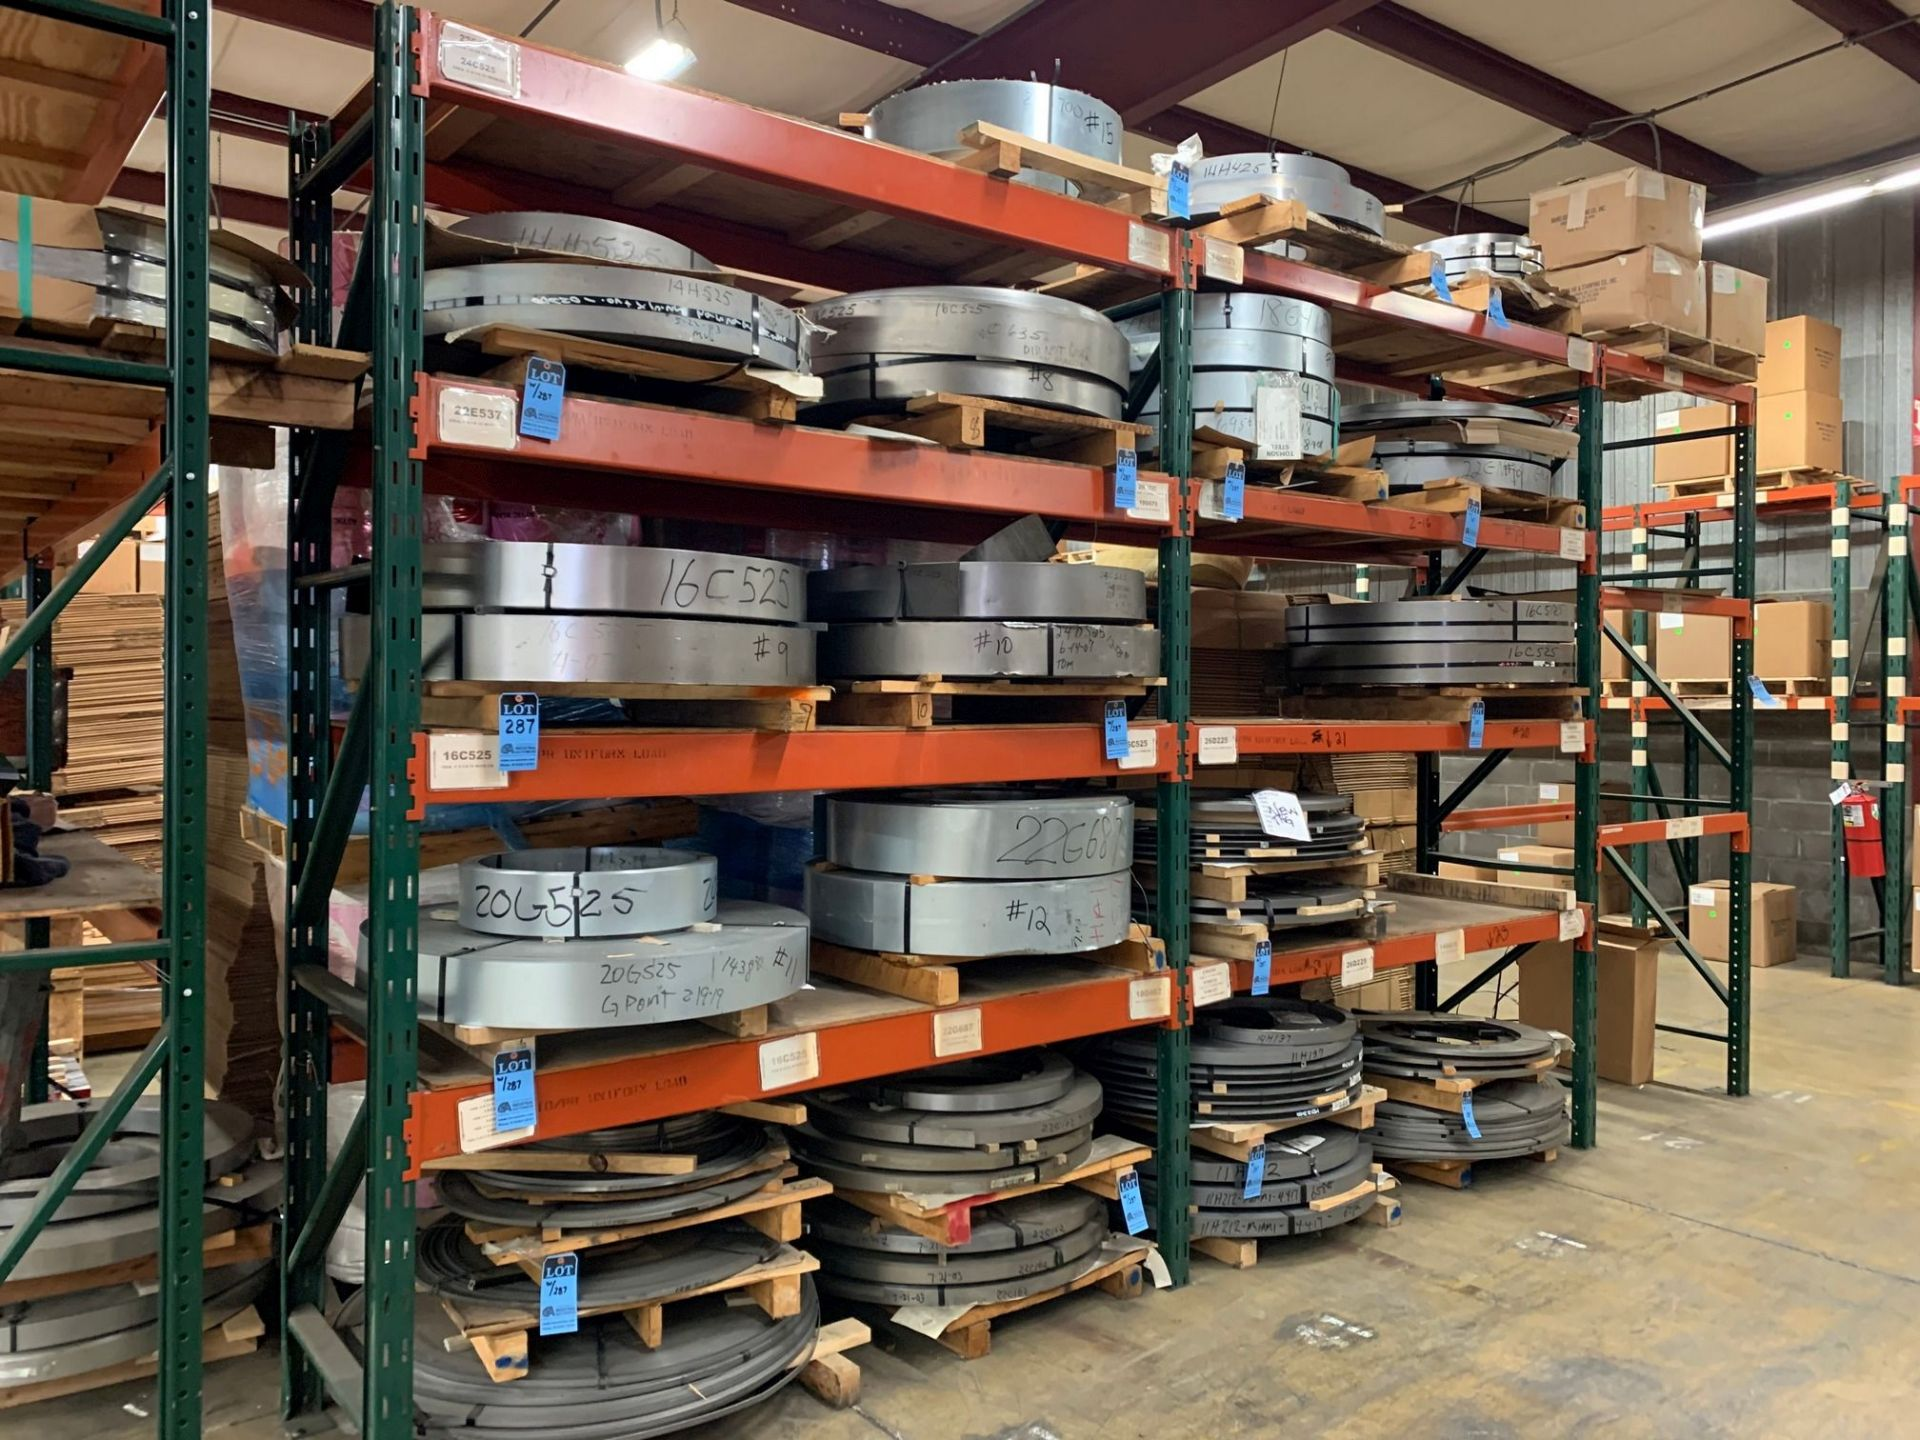 SKIDS OF MISCELLANEOUS STEEL COIL STOCK